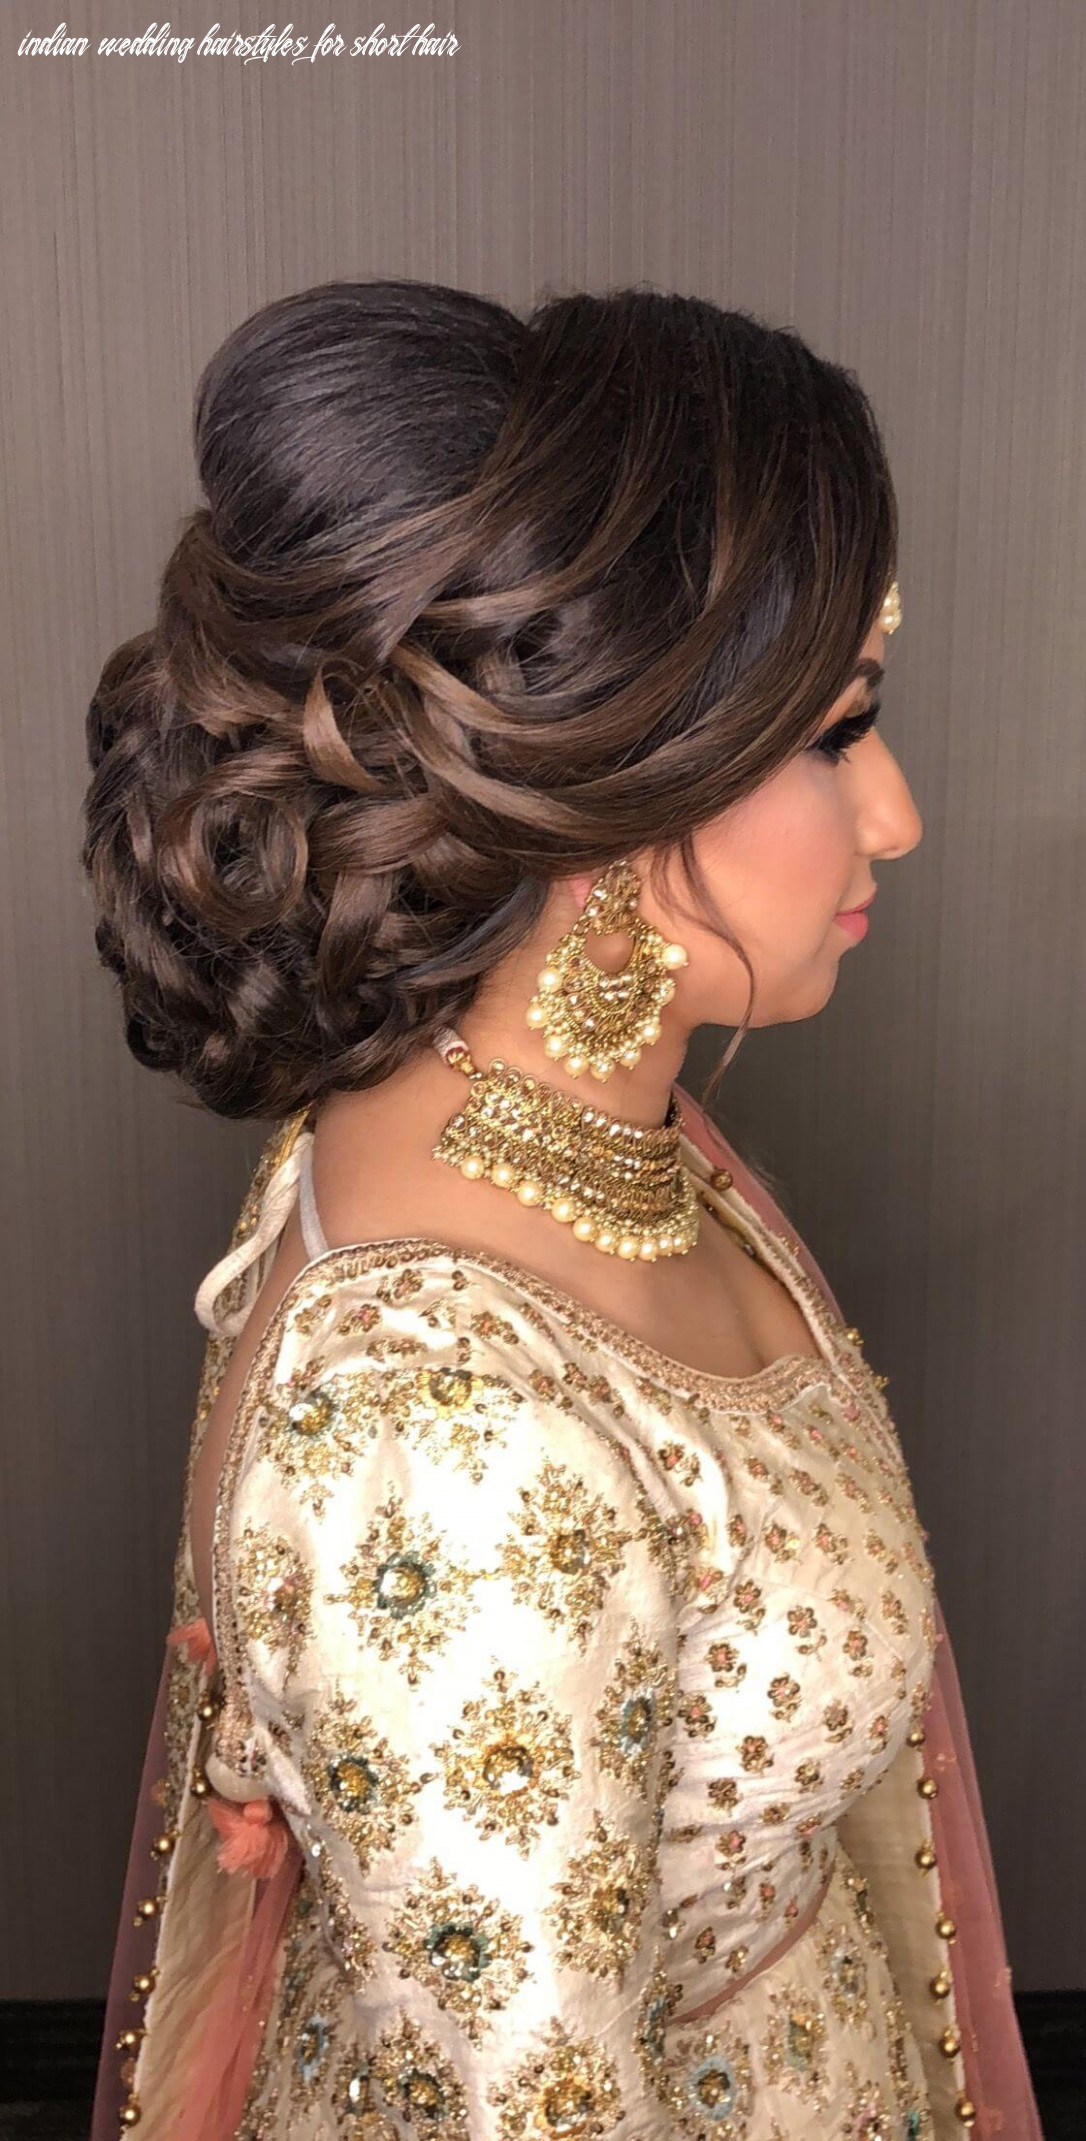 Hairstyles for short hair for indian wedding 11 indian wedding hairstyles for short hair